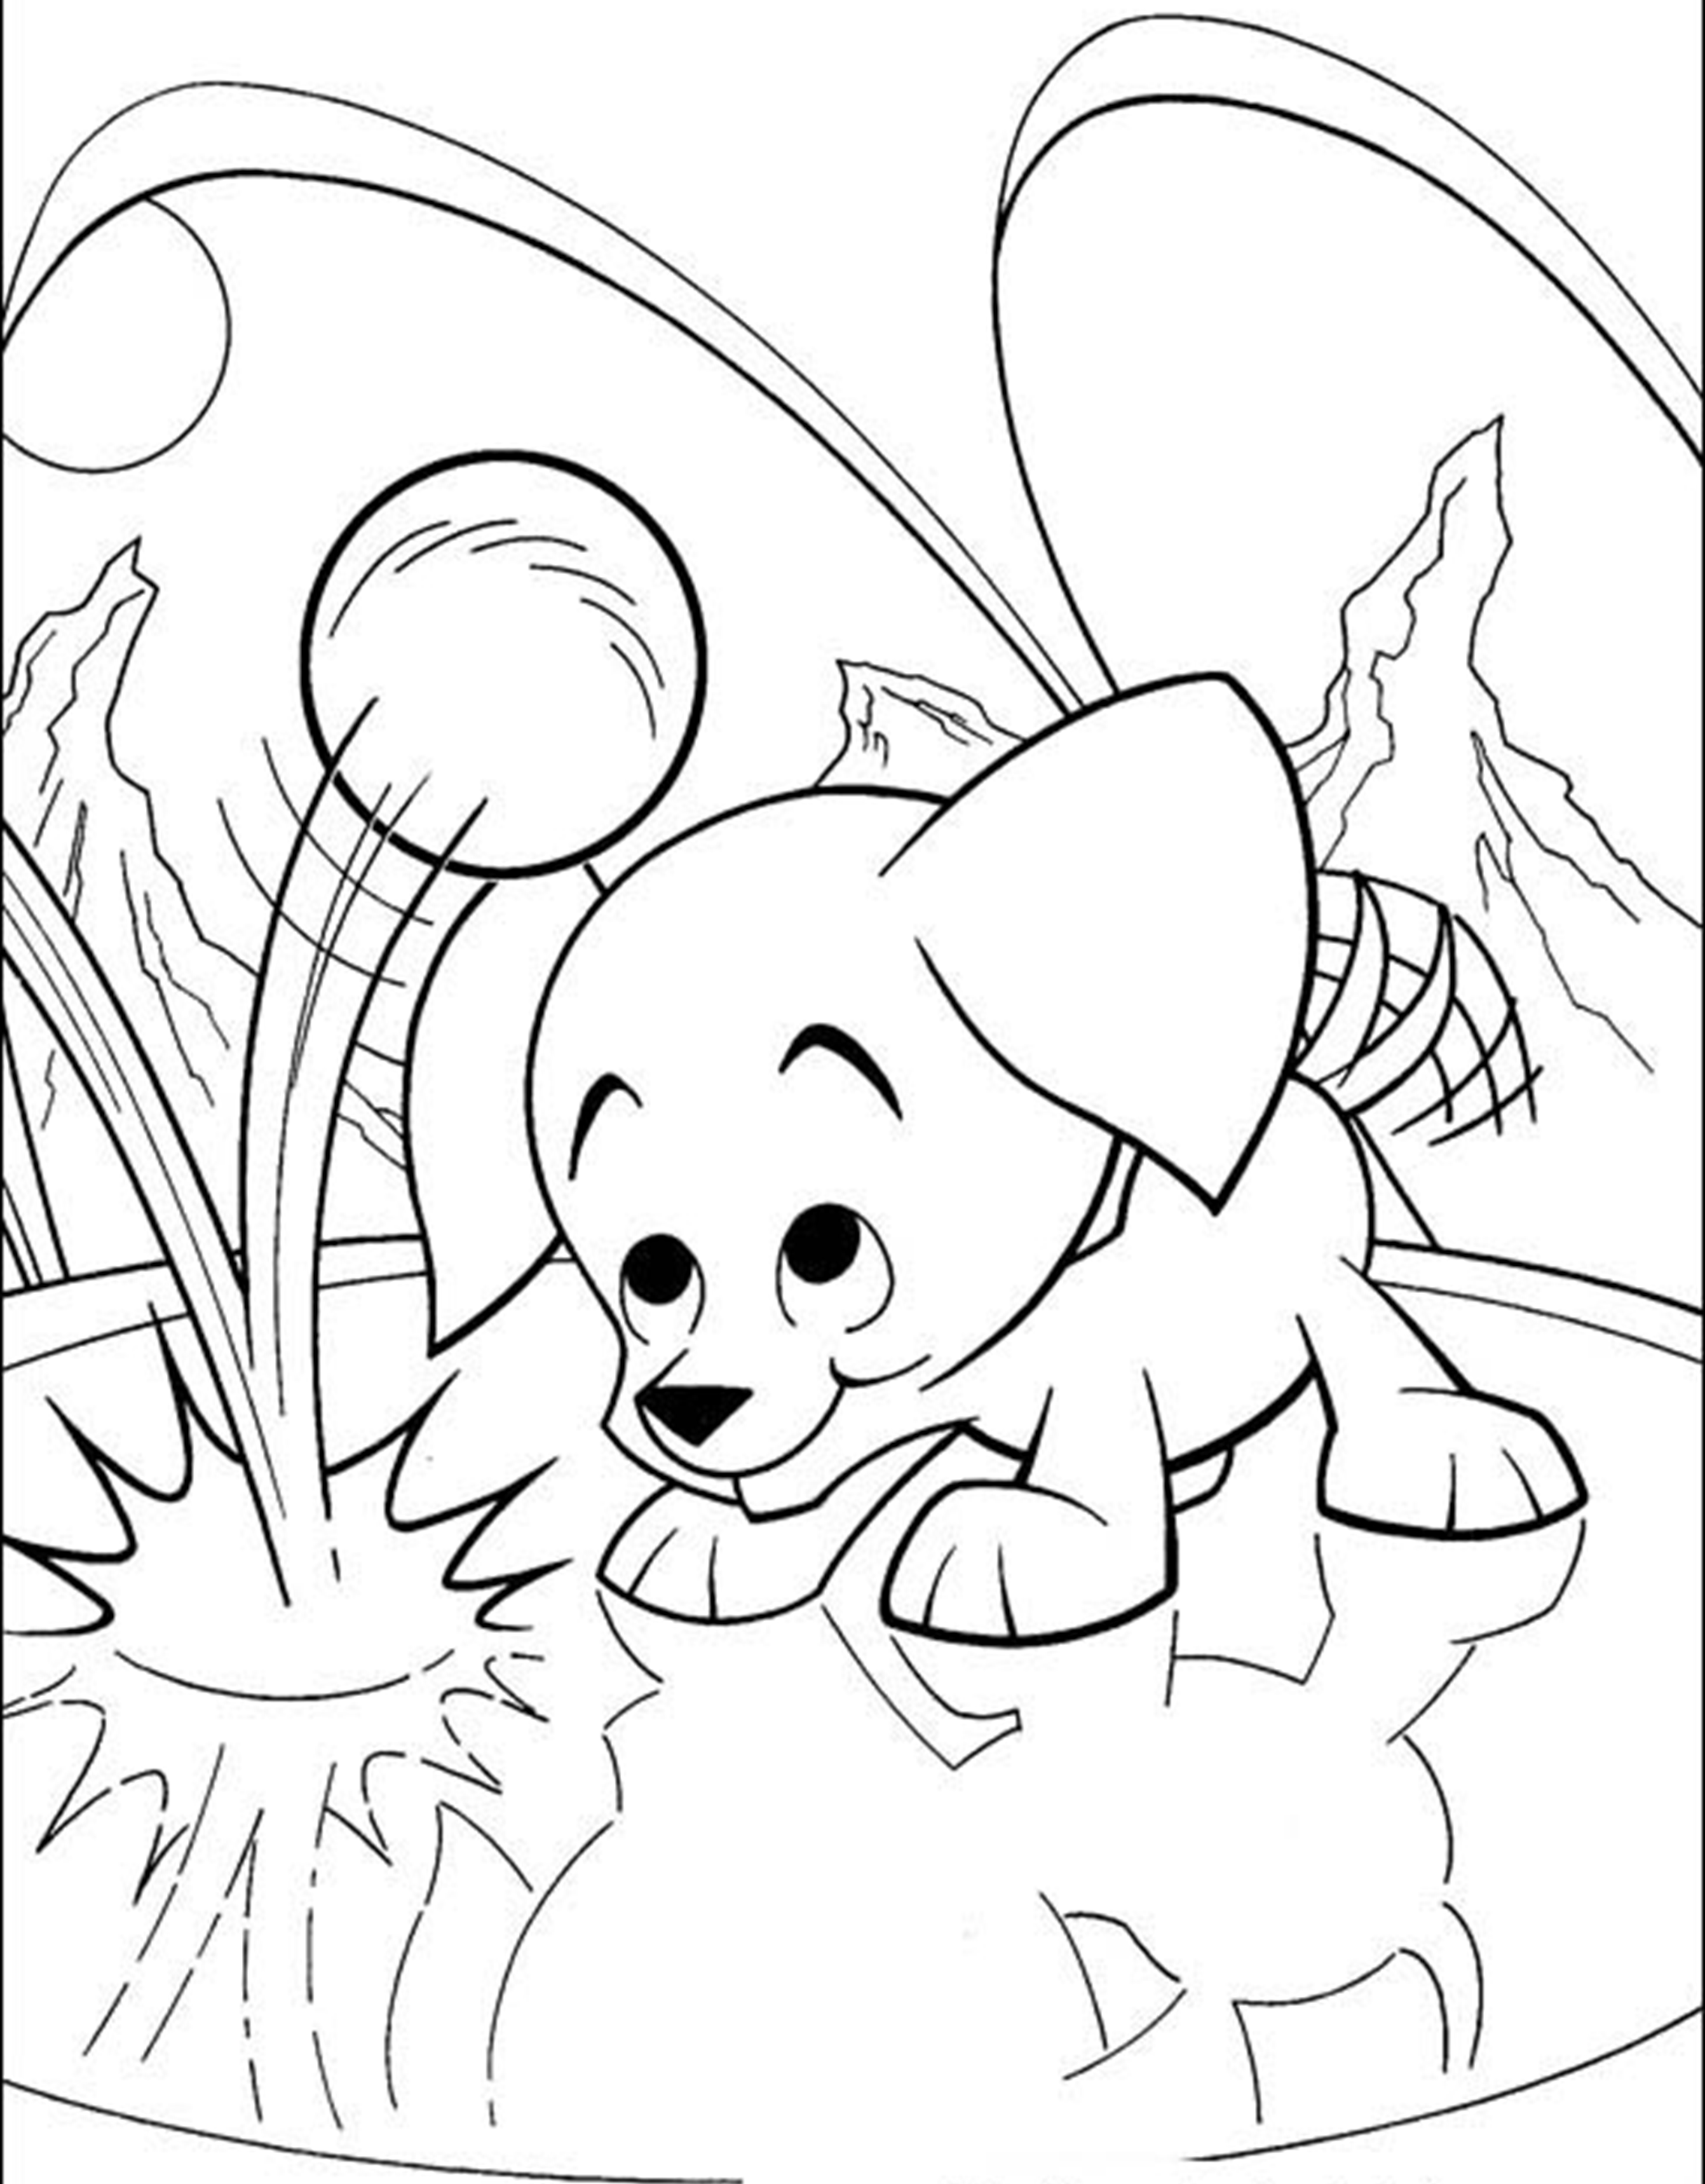 superman and superdog coloring pages - photo#12